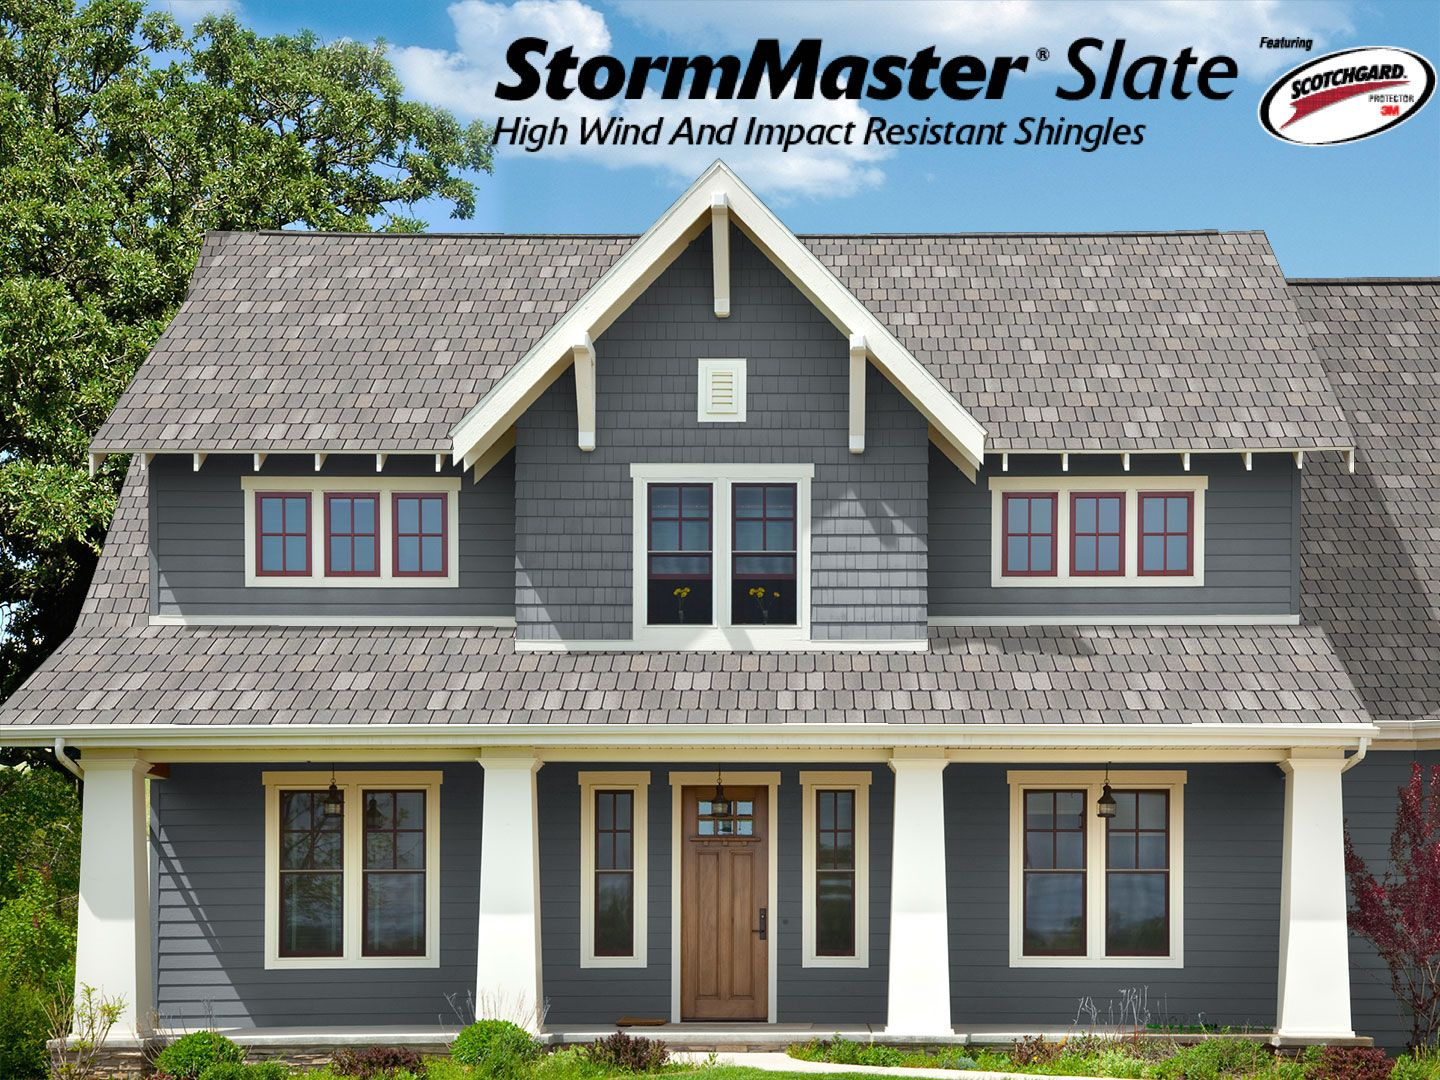 Pin On Stormmaster Slate Roofing Shingles